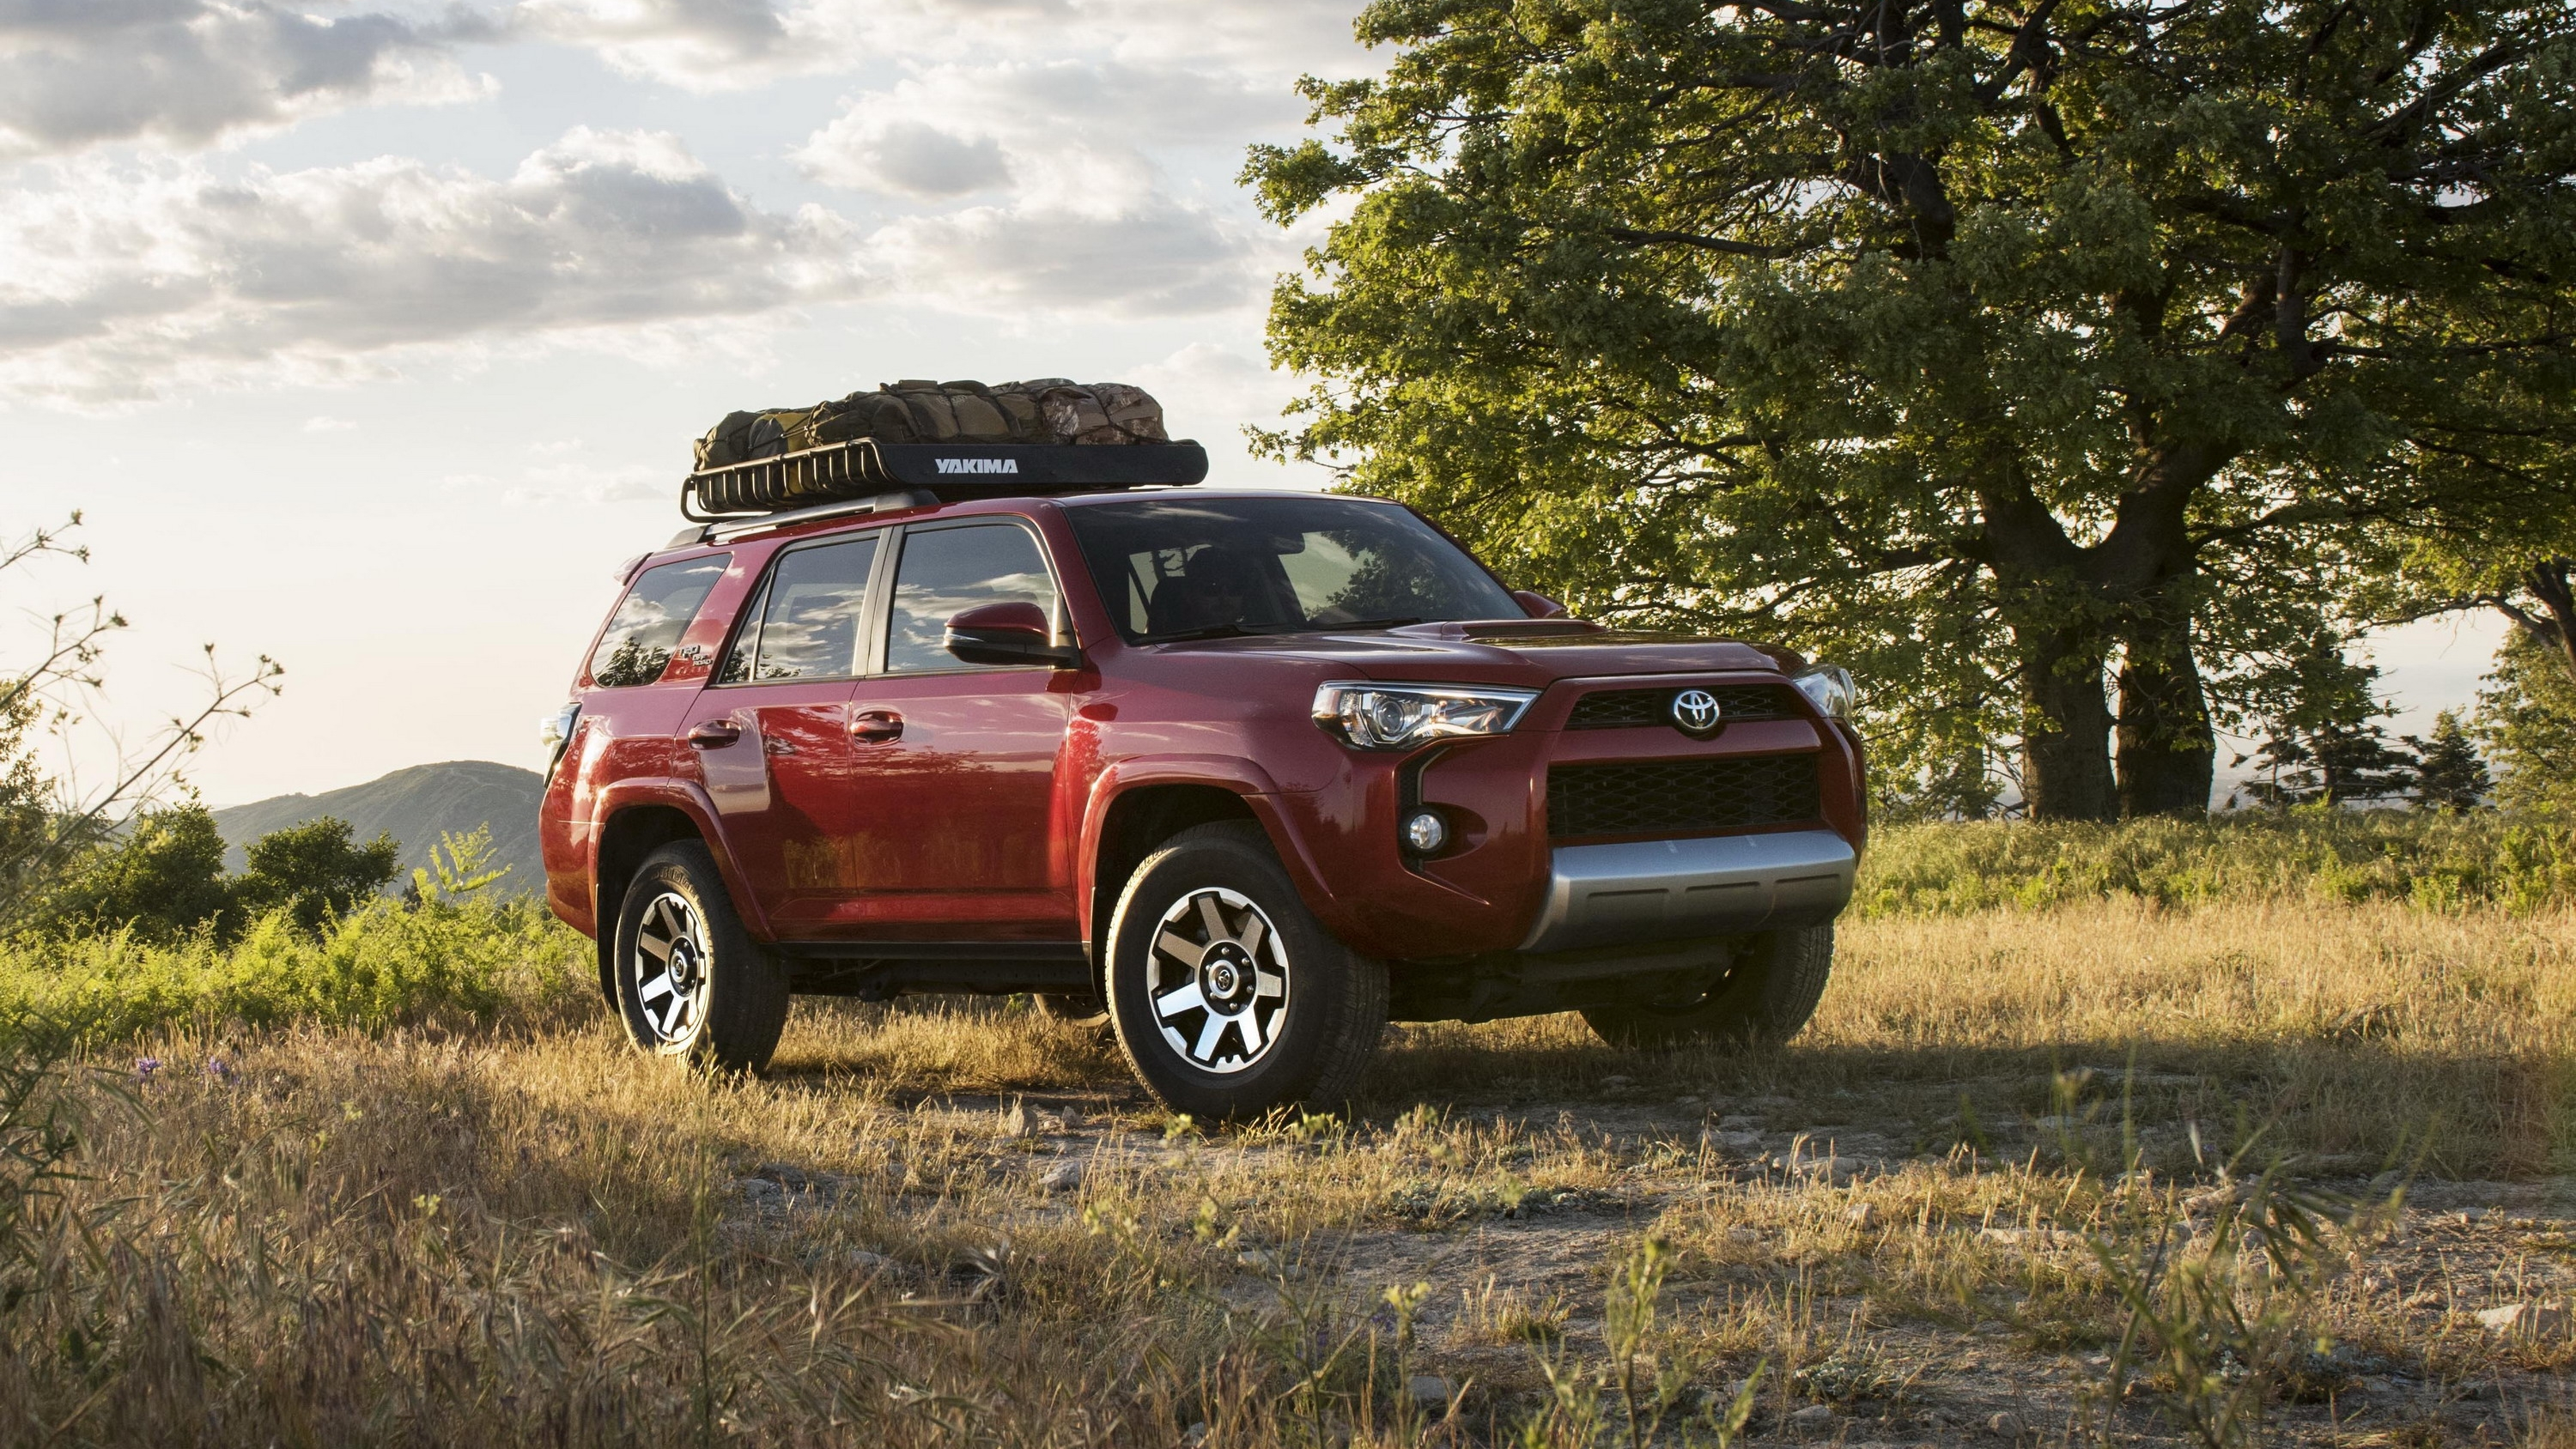 2017 toyota 4runner trd off road review gallery top speed. Black Bedroom Furniture Sets. Home Design Ideas